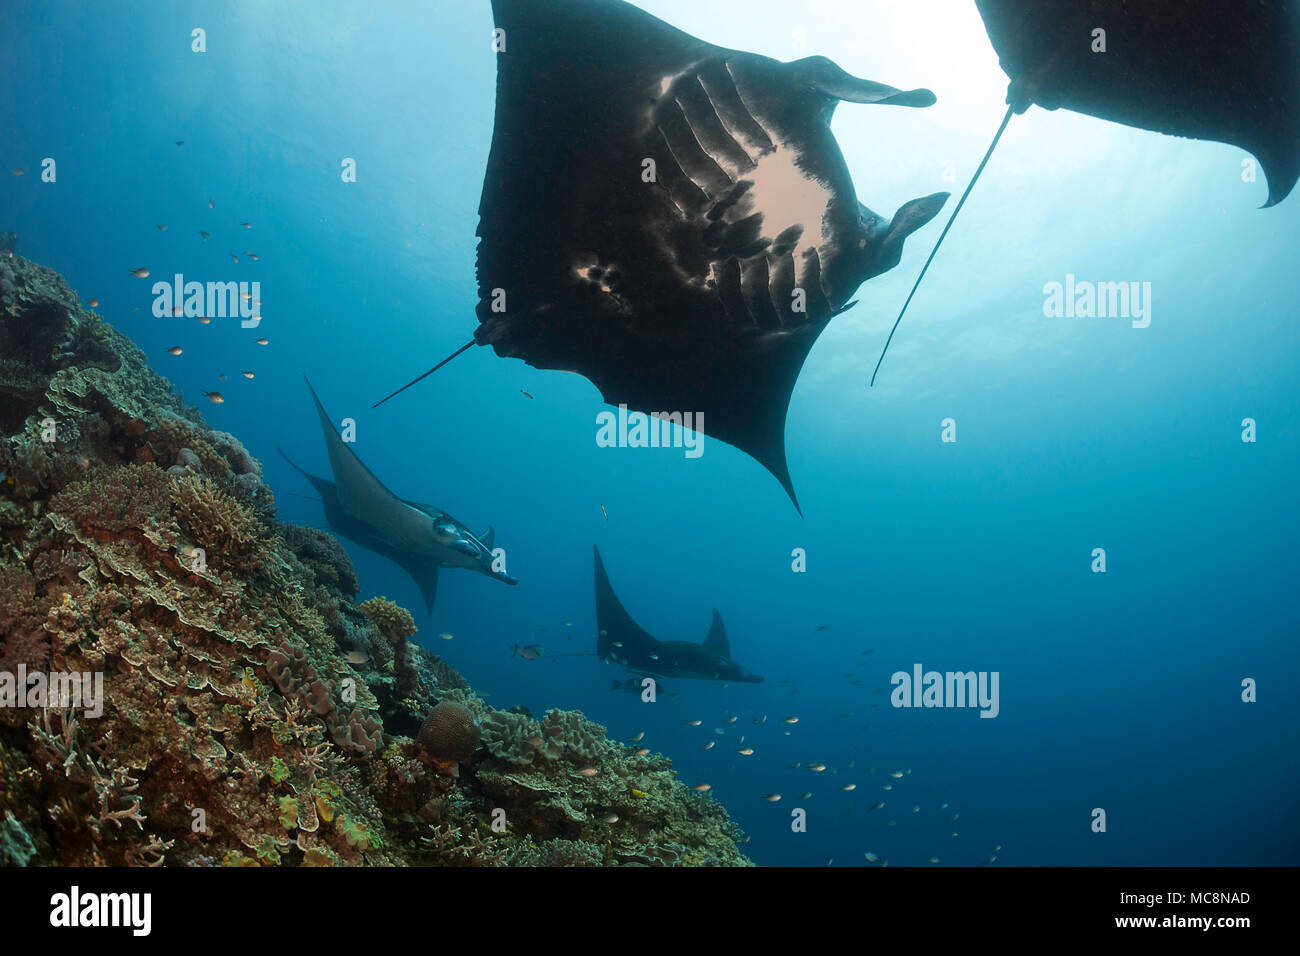 Five manta rays, Manta alfredi, gets close to the reef to be inspected by small cleaner wrasse at Manta Reef off the island of Kandavu, Fiji. - Stock Image